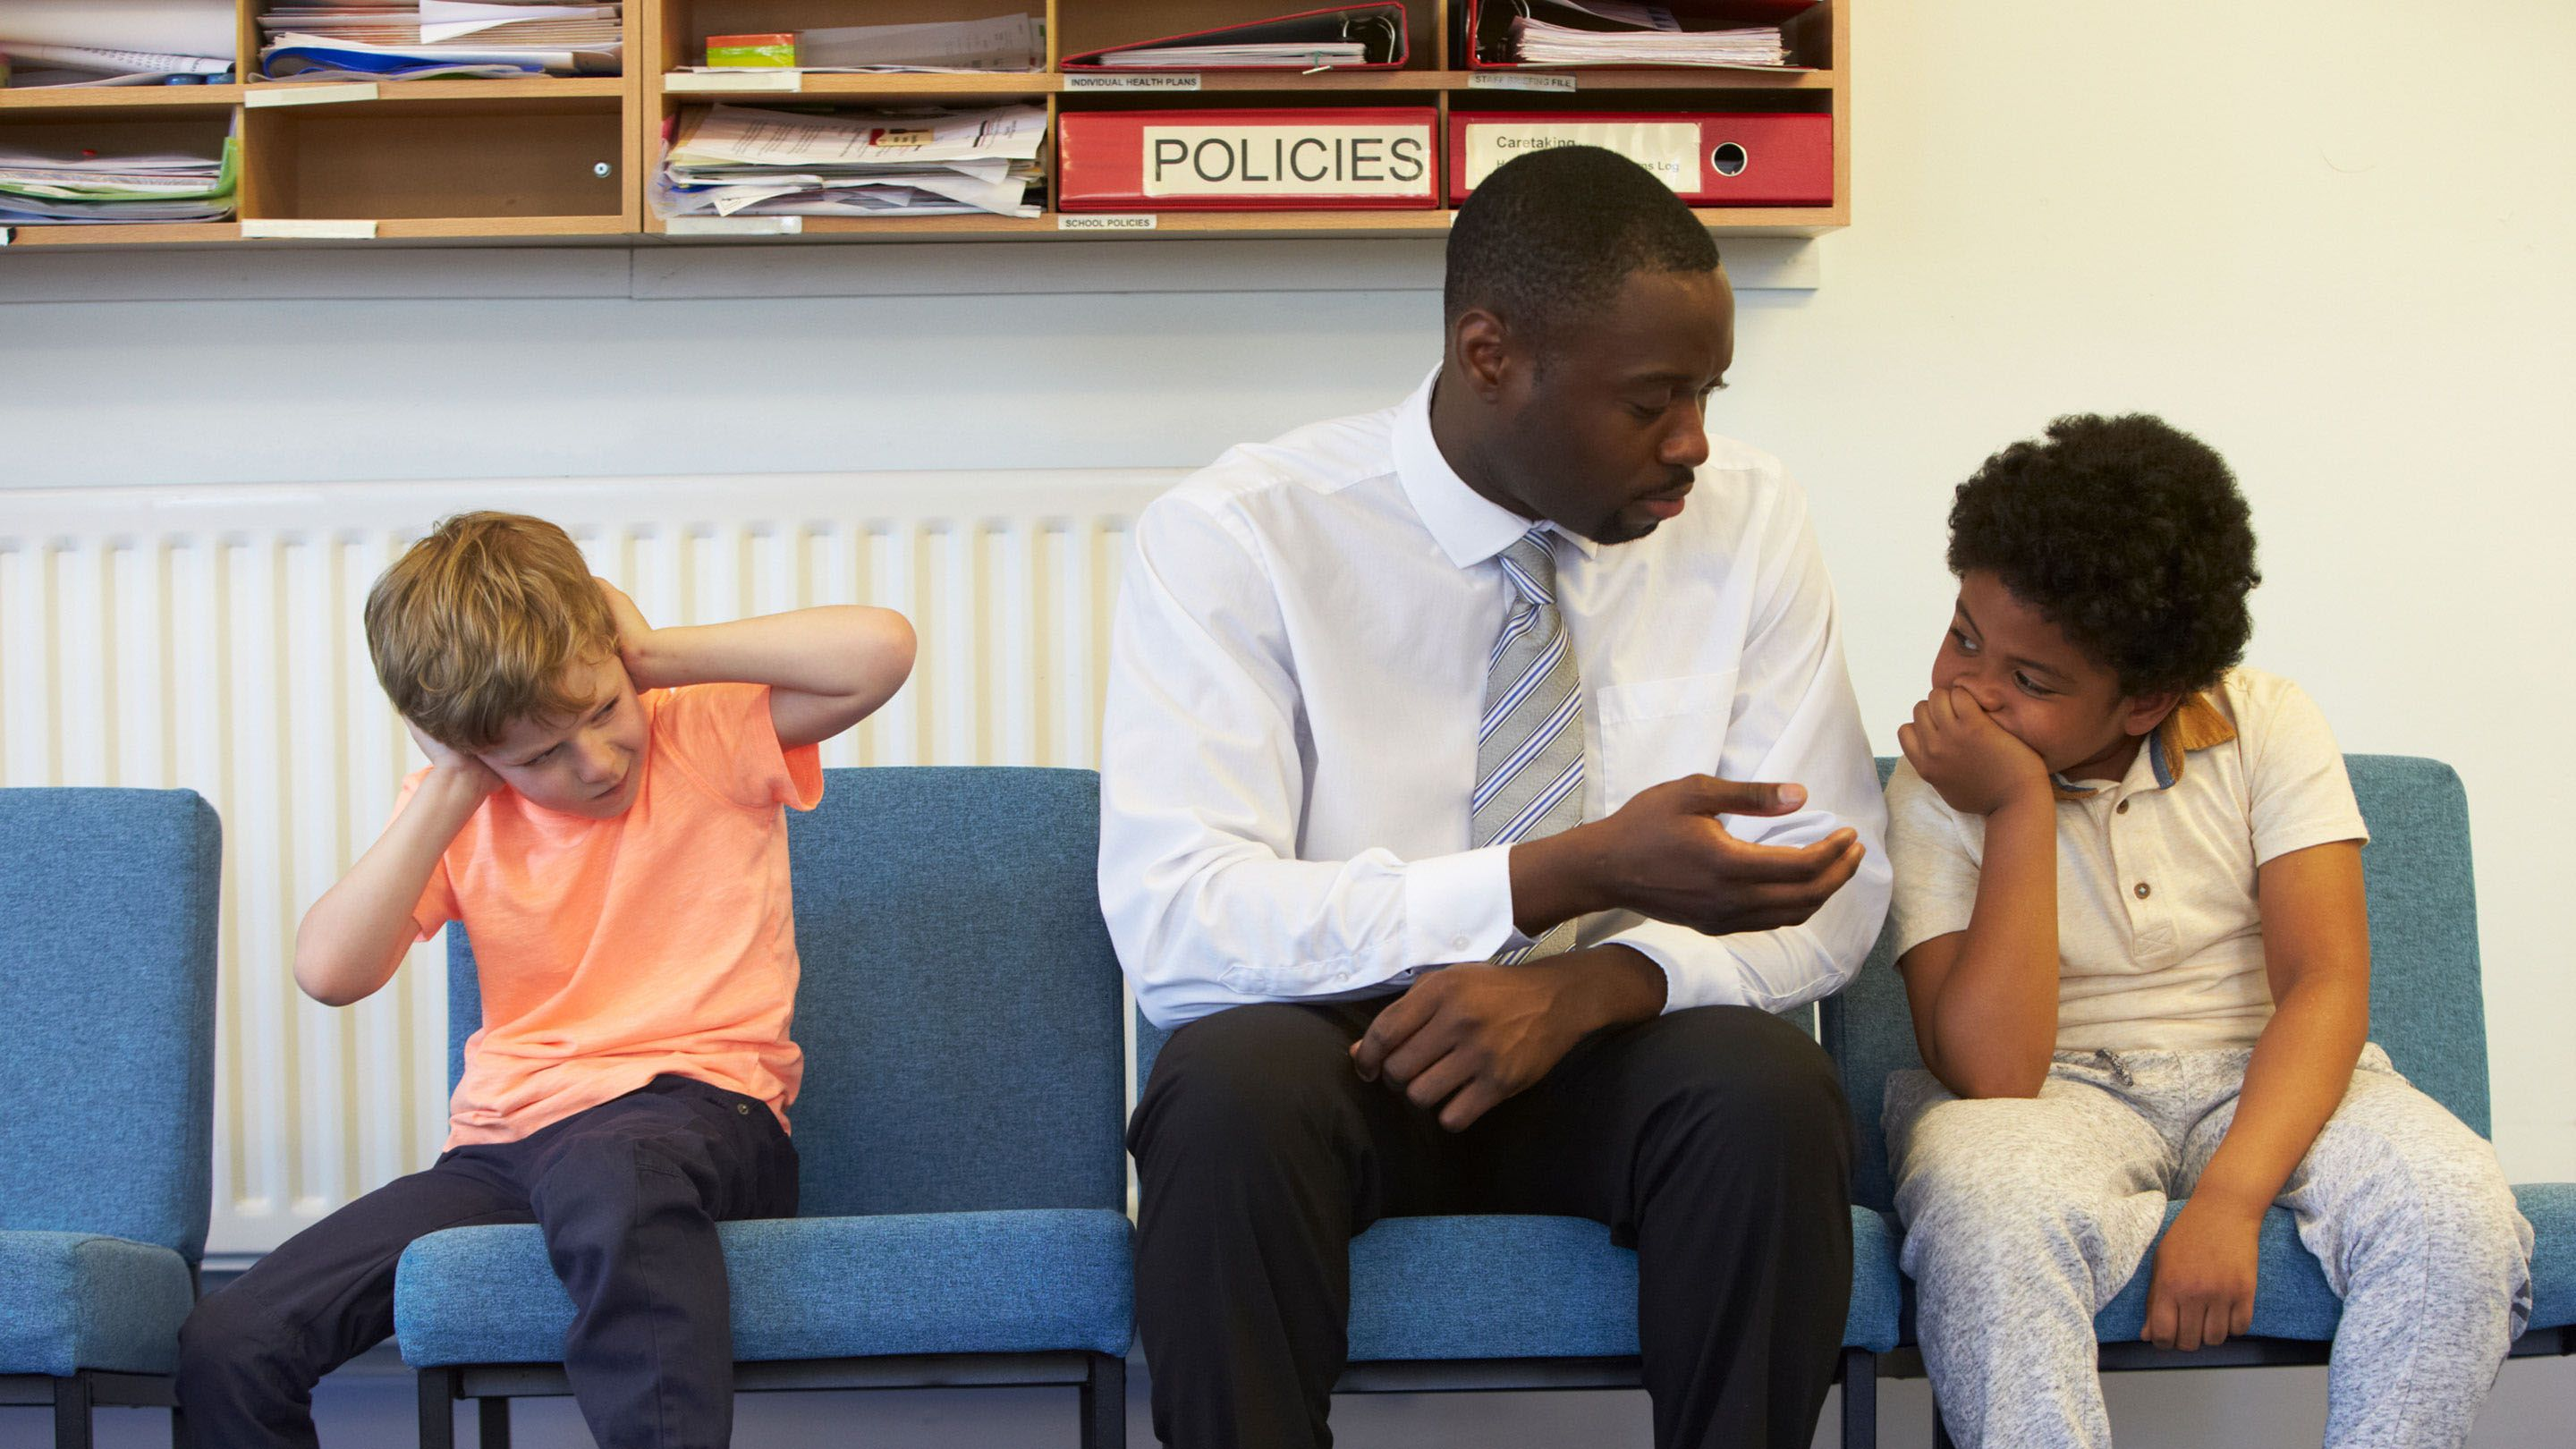 An adult male in a white button up shirt, tie, and black pants is sitting between two young boys in chairs against the wall of an administrative office. He's talking to one of them, while the other boy has his hands over his ears.